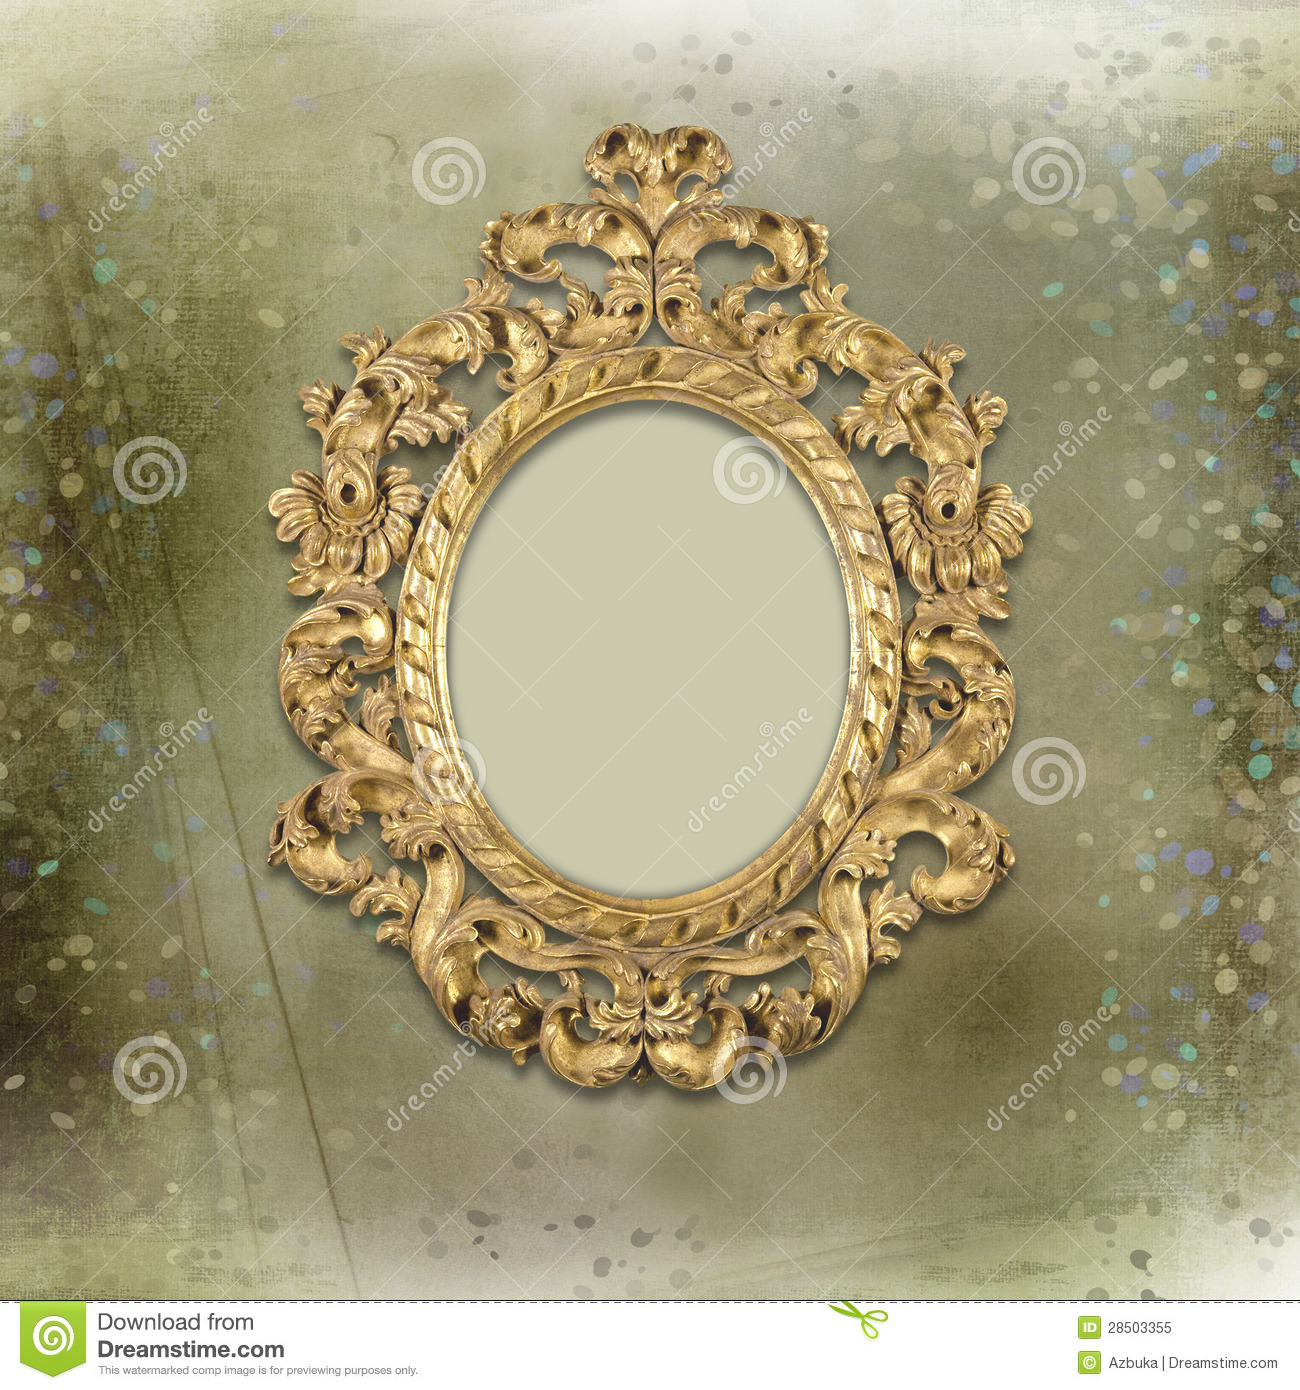 old gold frames victorian style on the background royalty free stock photo